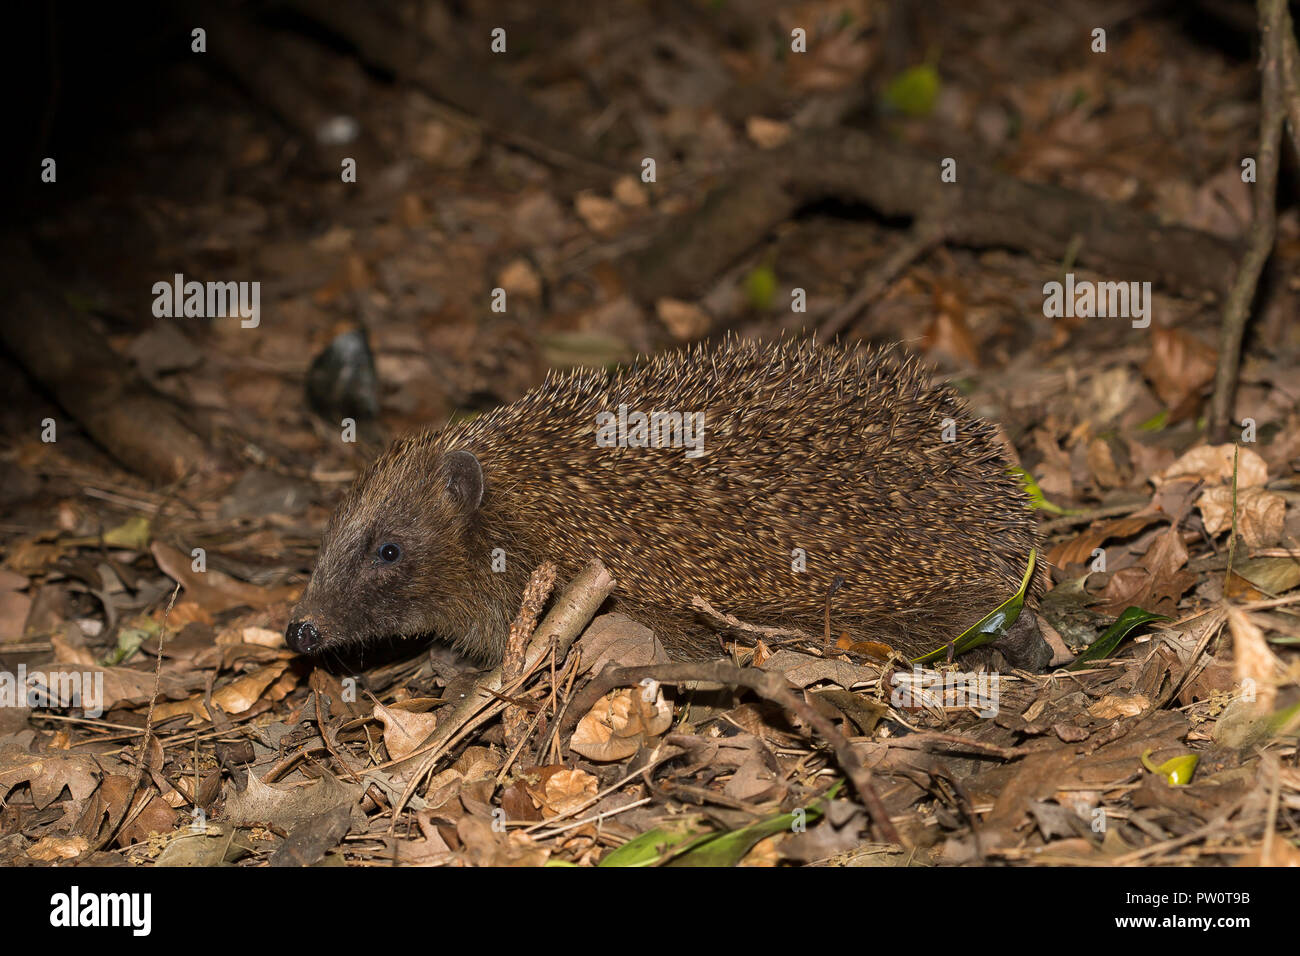 Detailed, close-up, side view of single, British hedgehog (erinaceus europaeus) isolated, foraging in leaves, outdoors in dark woodland undergrowth. Stock Photo